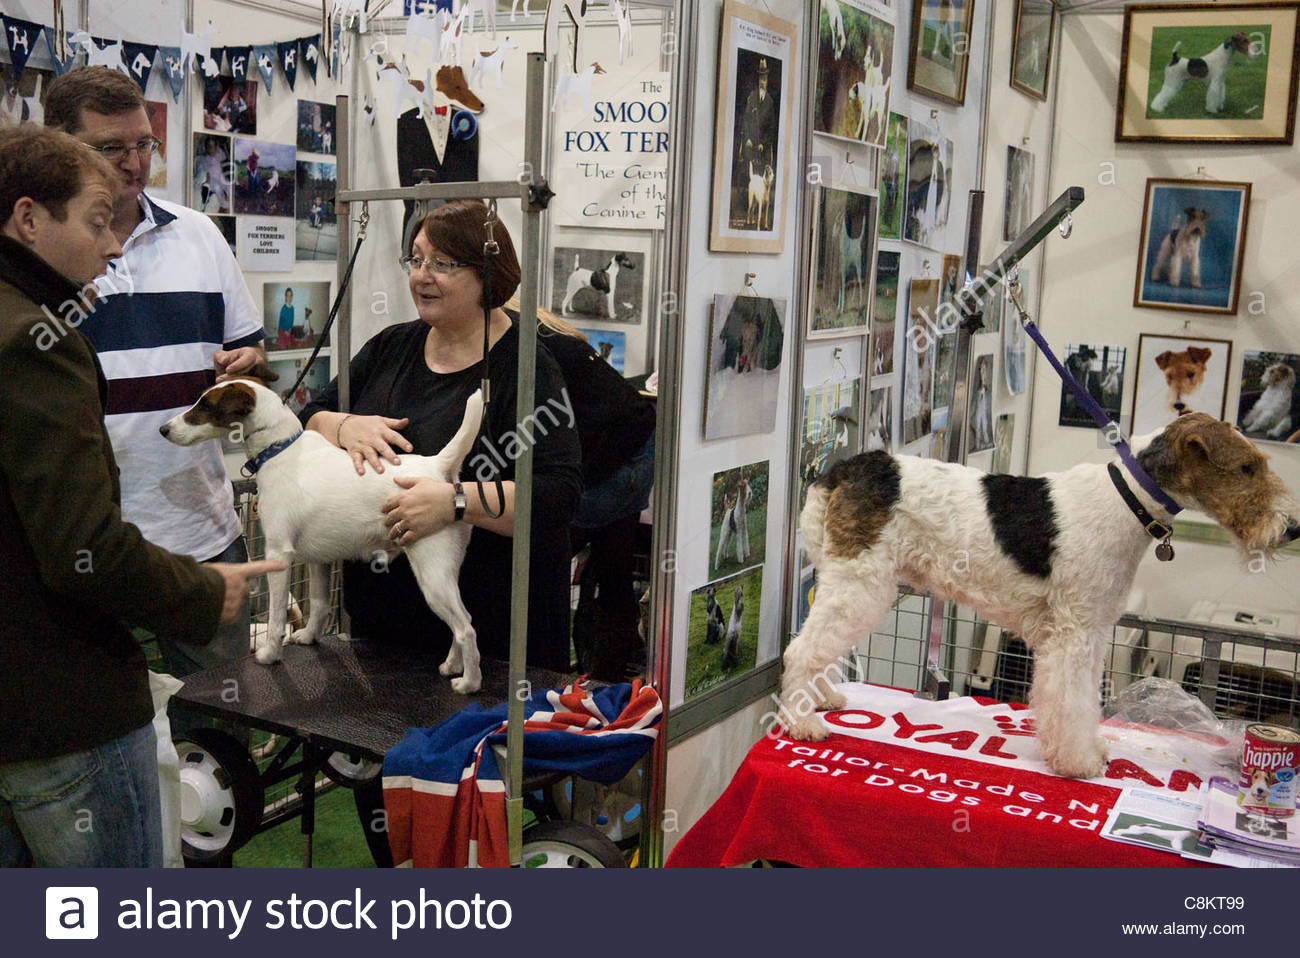 Discover Dogs dog show at Earls Court - Stock Image